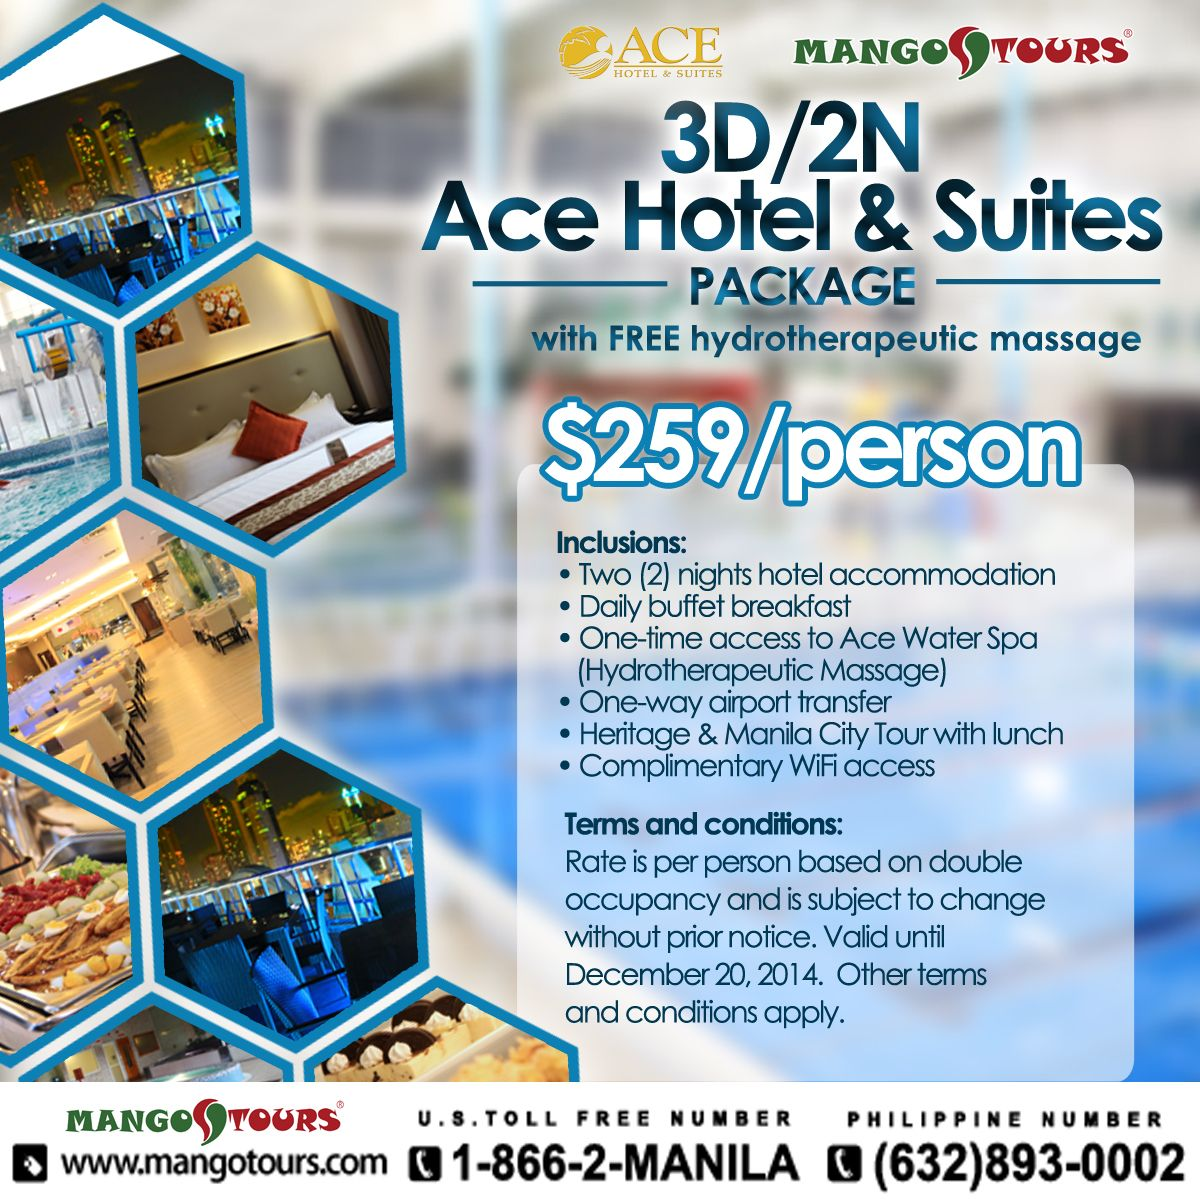 3D2N Ace Hotel  Suites with FREE Hydrotherapeutic